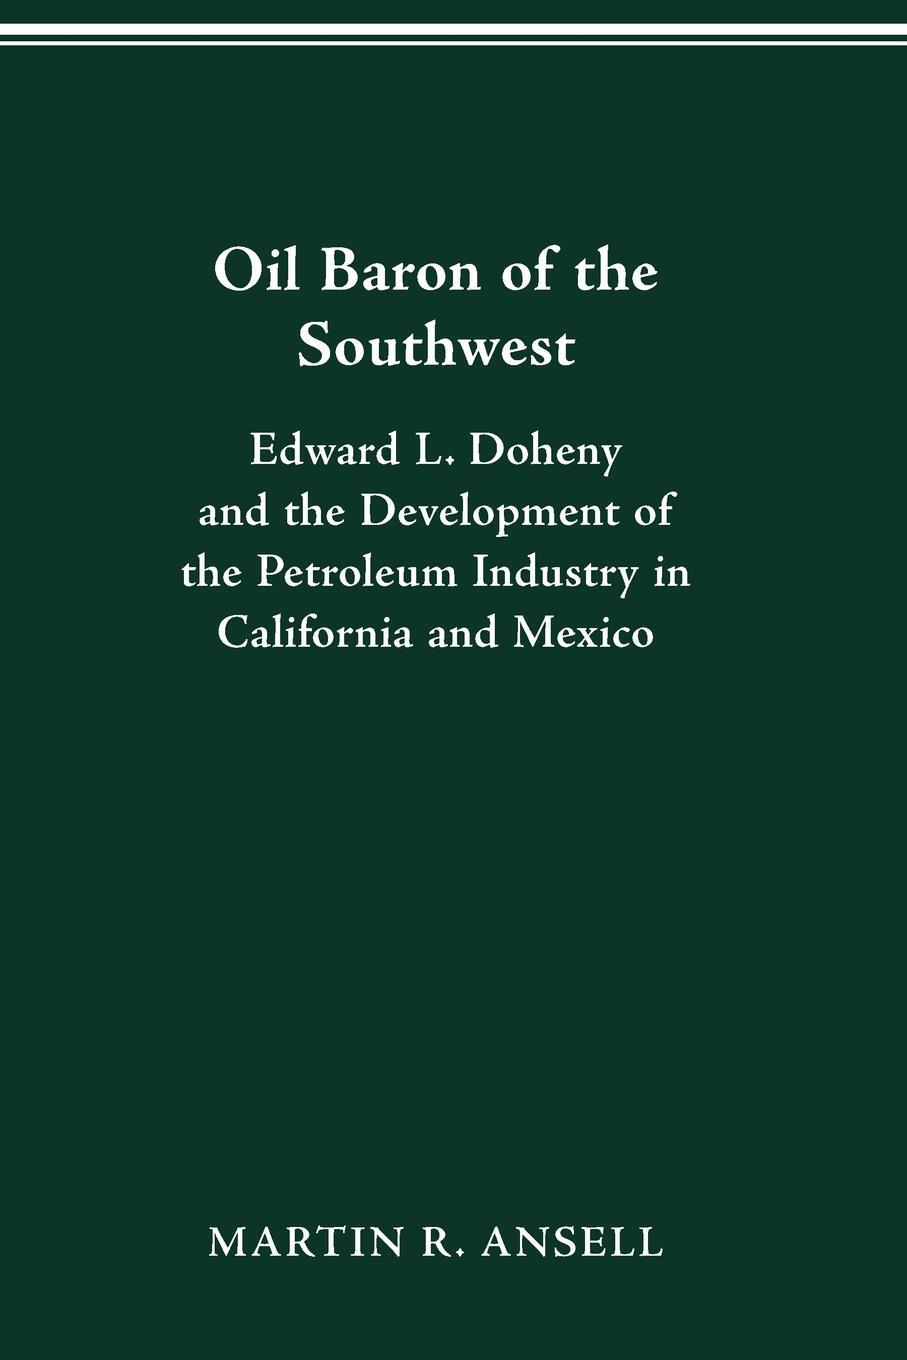 MARTIN ANSELL. Oil Baron of the Southwest. Edward L. Doheny and the Development of the Petroleum Industry in California and Mexico